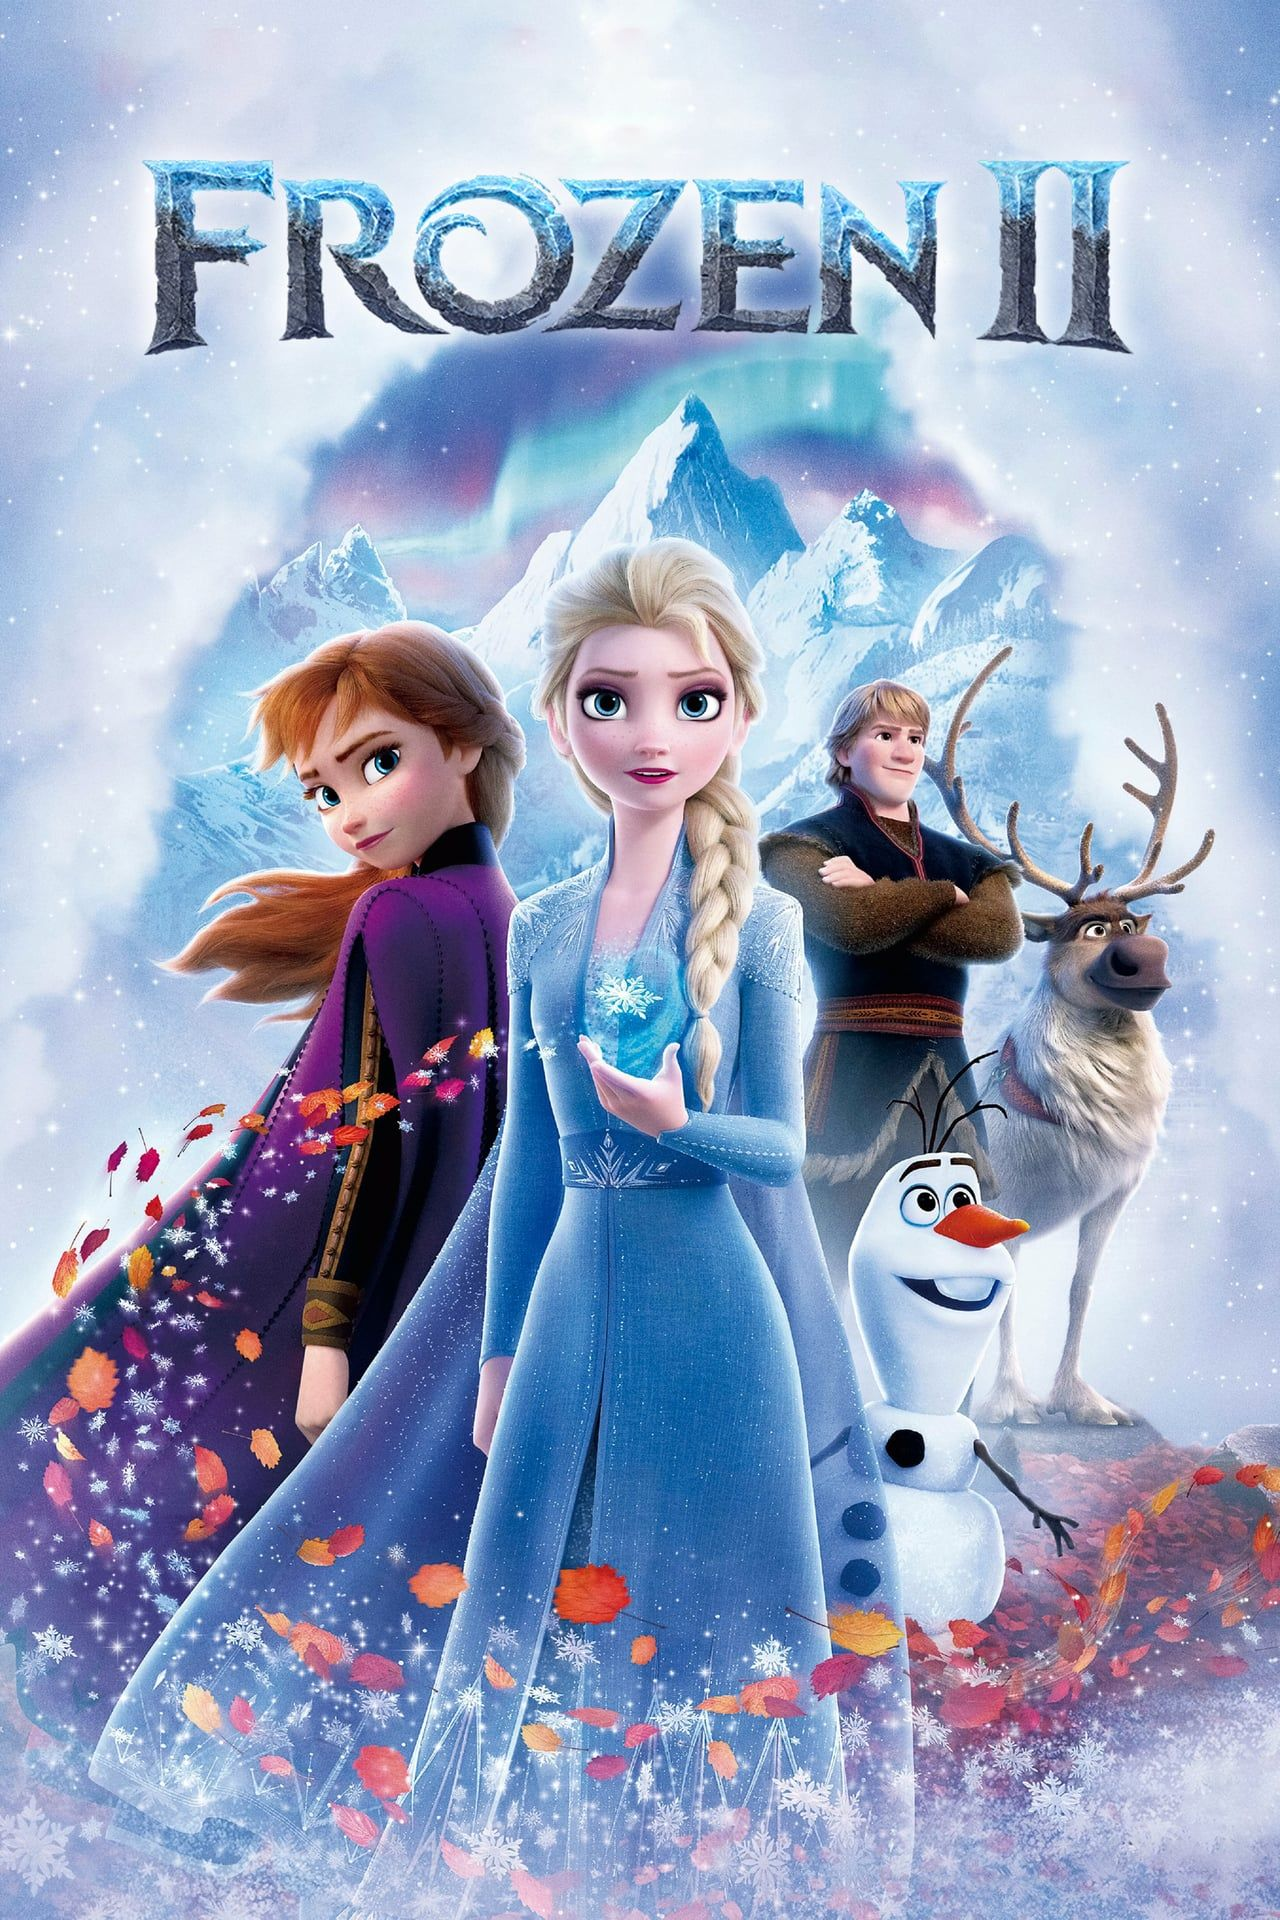 La Reine Des Neiges 2 En Streaming : reine, neiges, streaming, Regarder, Reine, Neiges, [2019], Streaming, Téléchargement, Gratuit, Fetchflick, Film,, Films, Online,, Frozen